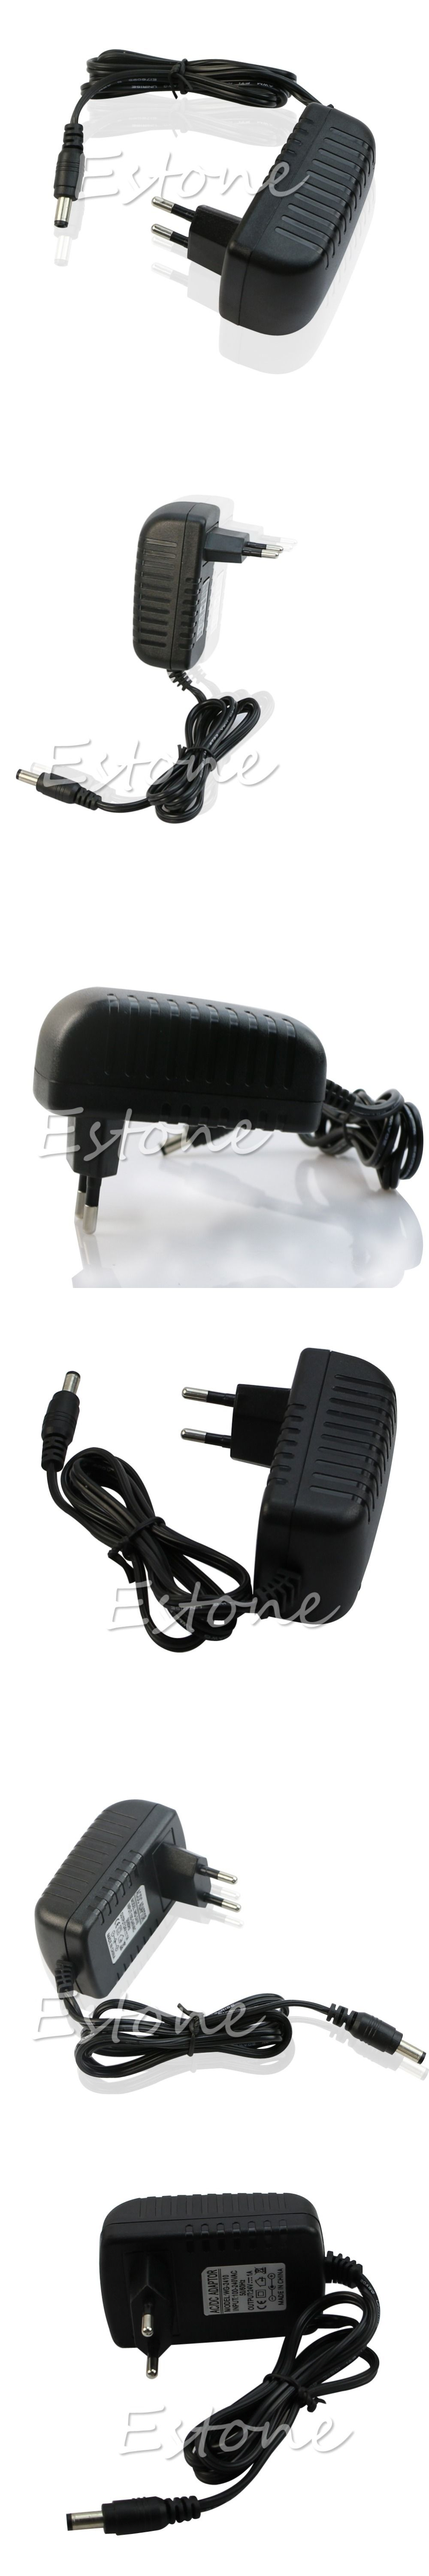 C18 2015 Newest Hot Eu Plug Ac 110v 220v Converter Dc 24v 1a 100 240v To 9v Switching Power Supply Adapter Server